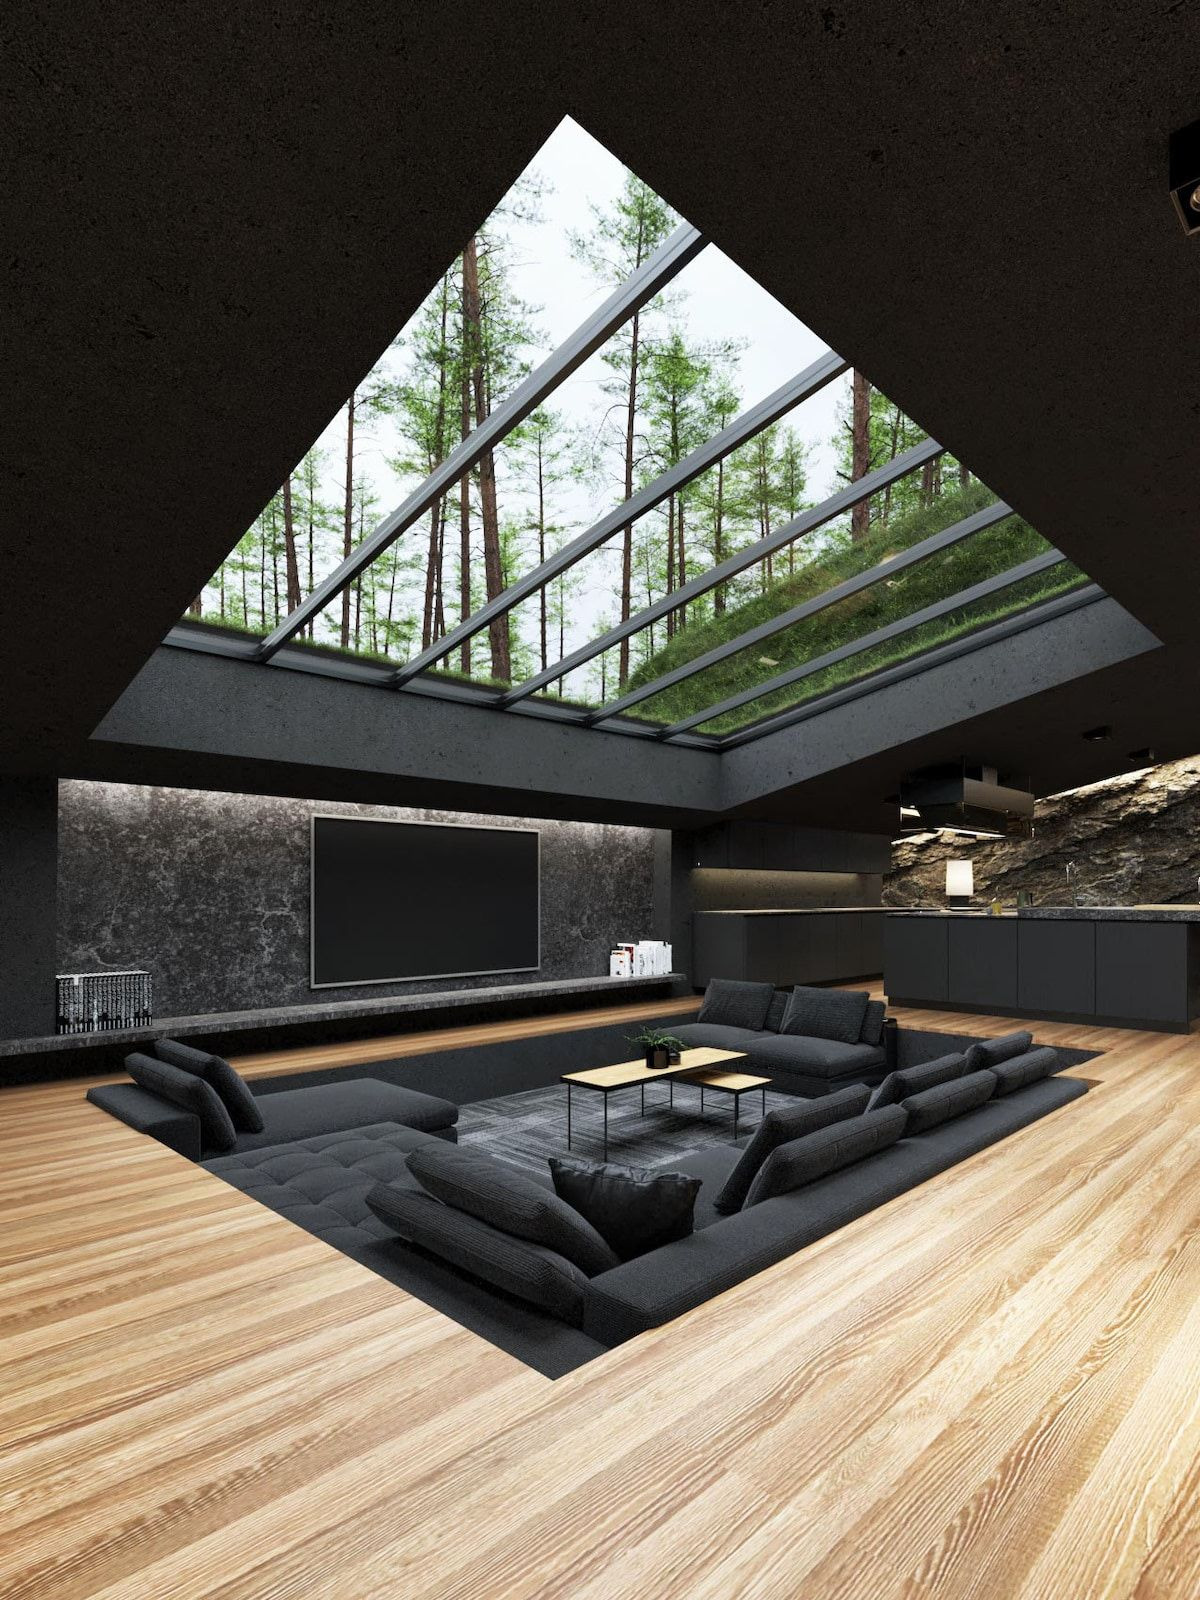 Conceptual 'Black Villa' Offers Unexpected Drama To a New York Forest